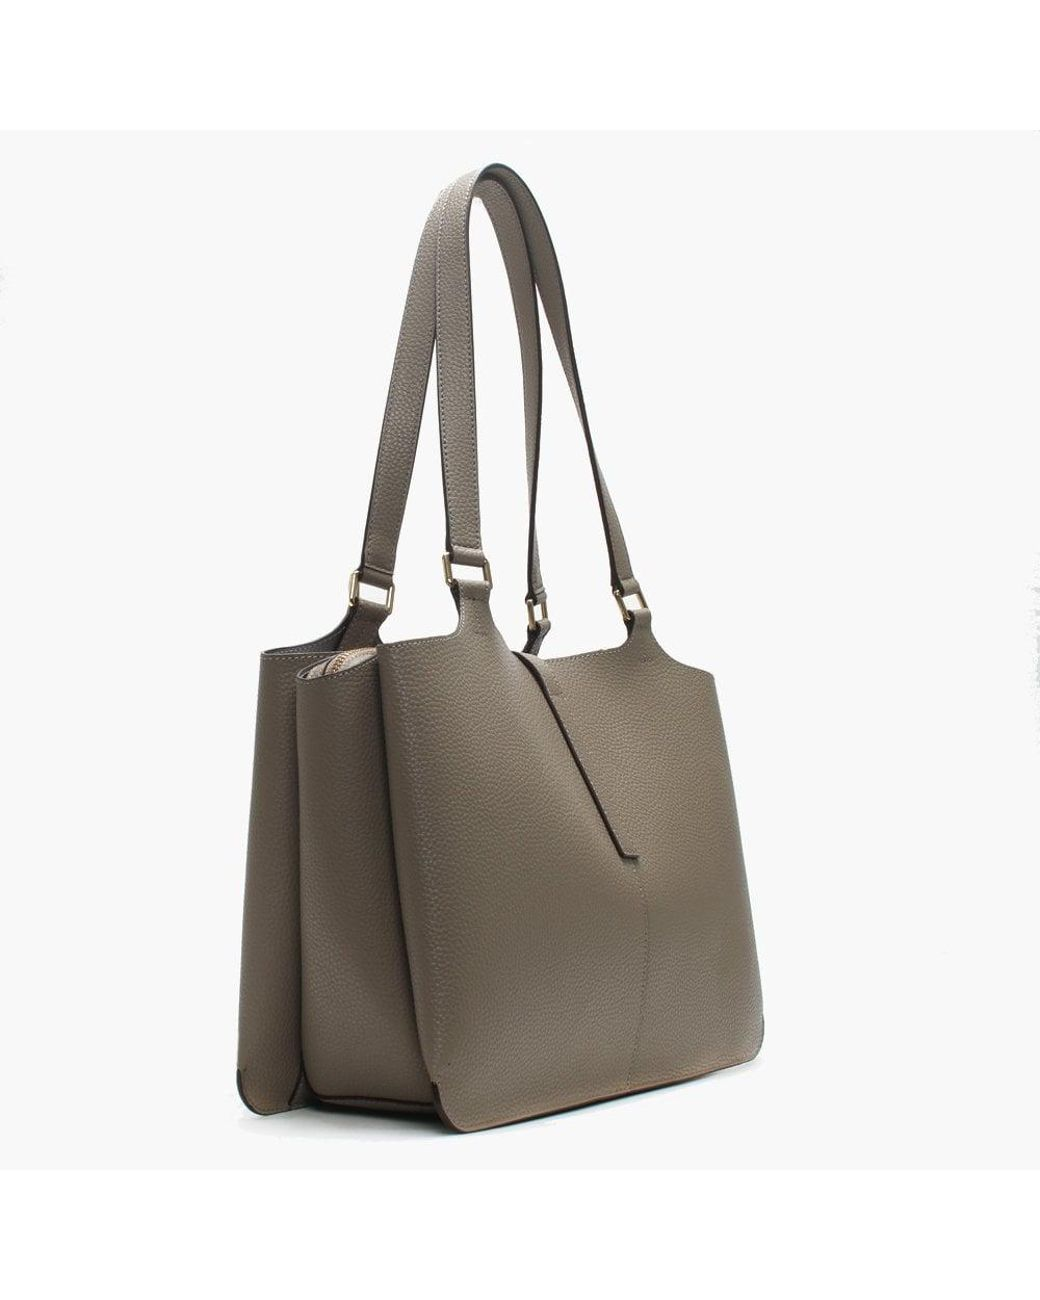 495be08b18f6d DKNY Paris Soft Clay Pebbled Leather Large Tote Bag - Lyst